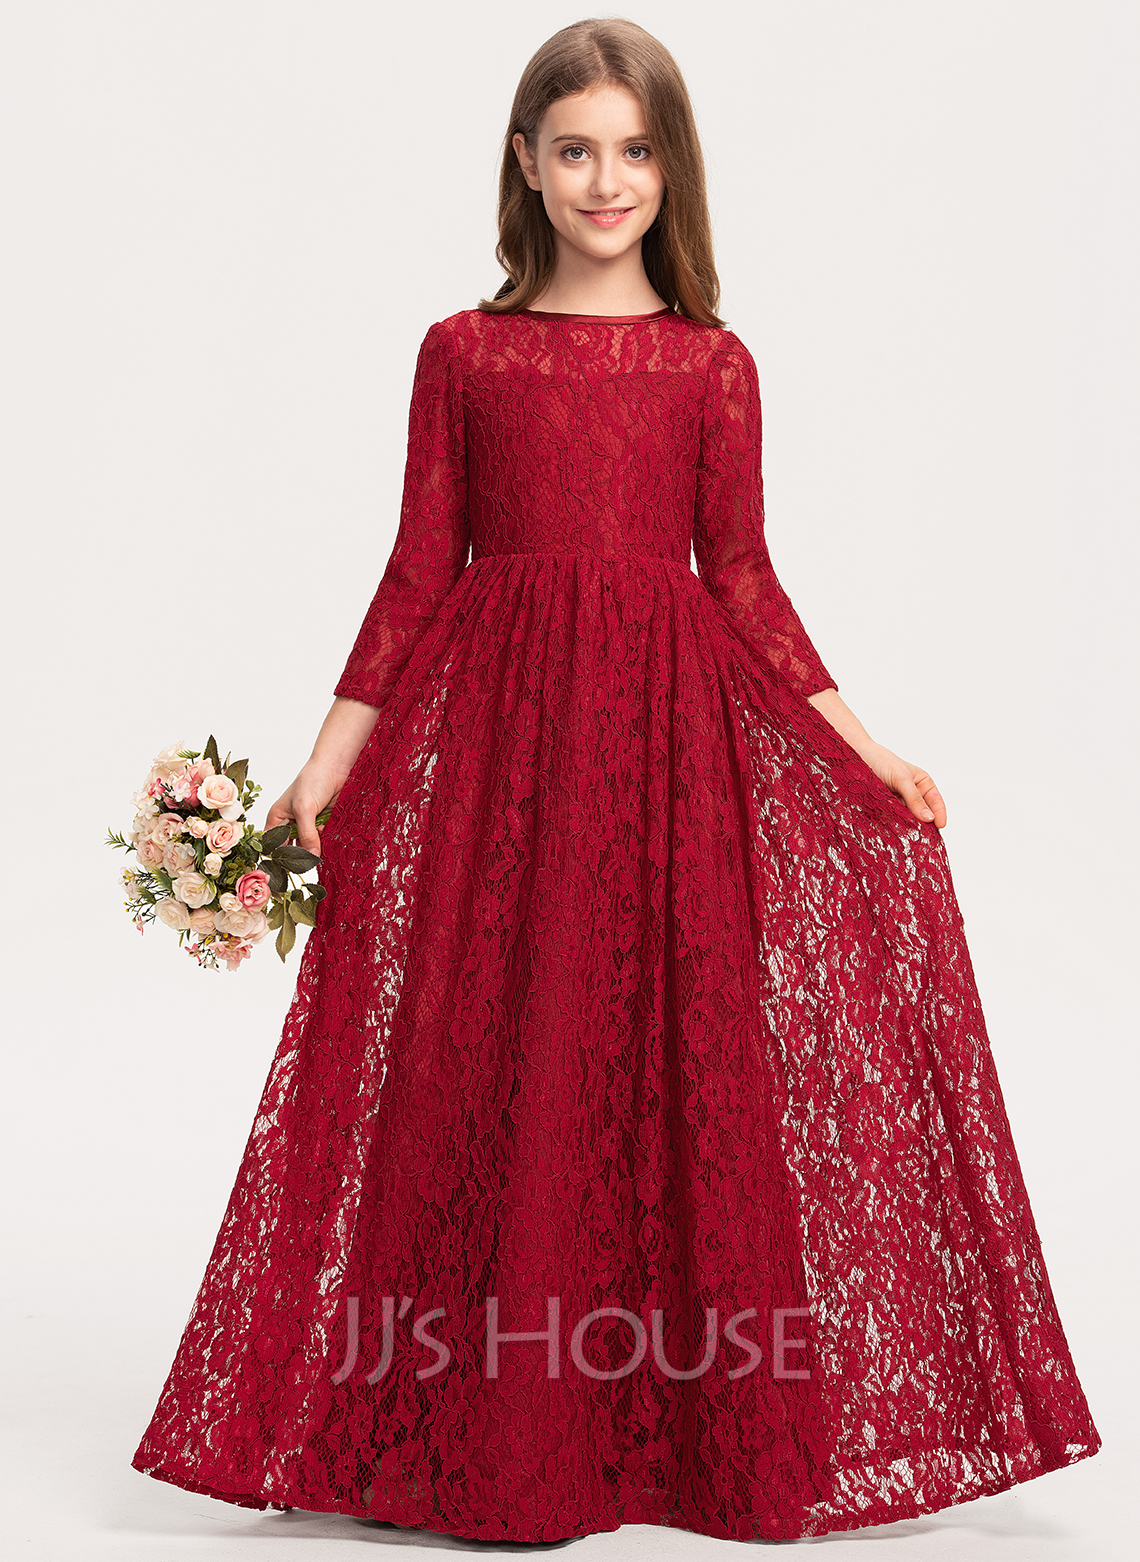 Scoop Neck Floor-Length Lace Junior Bridesmaid Dress